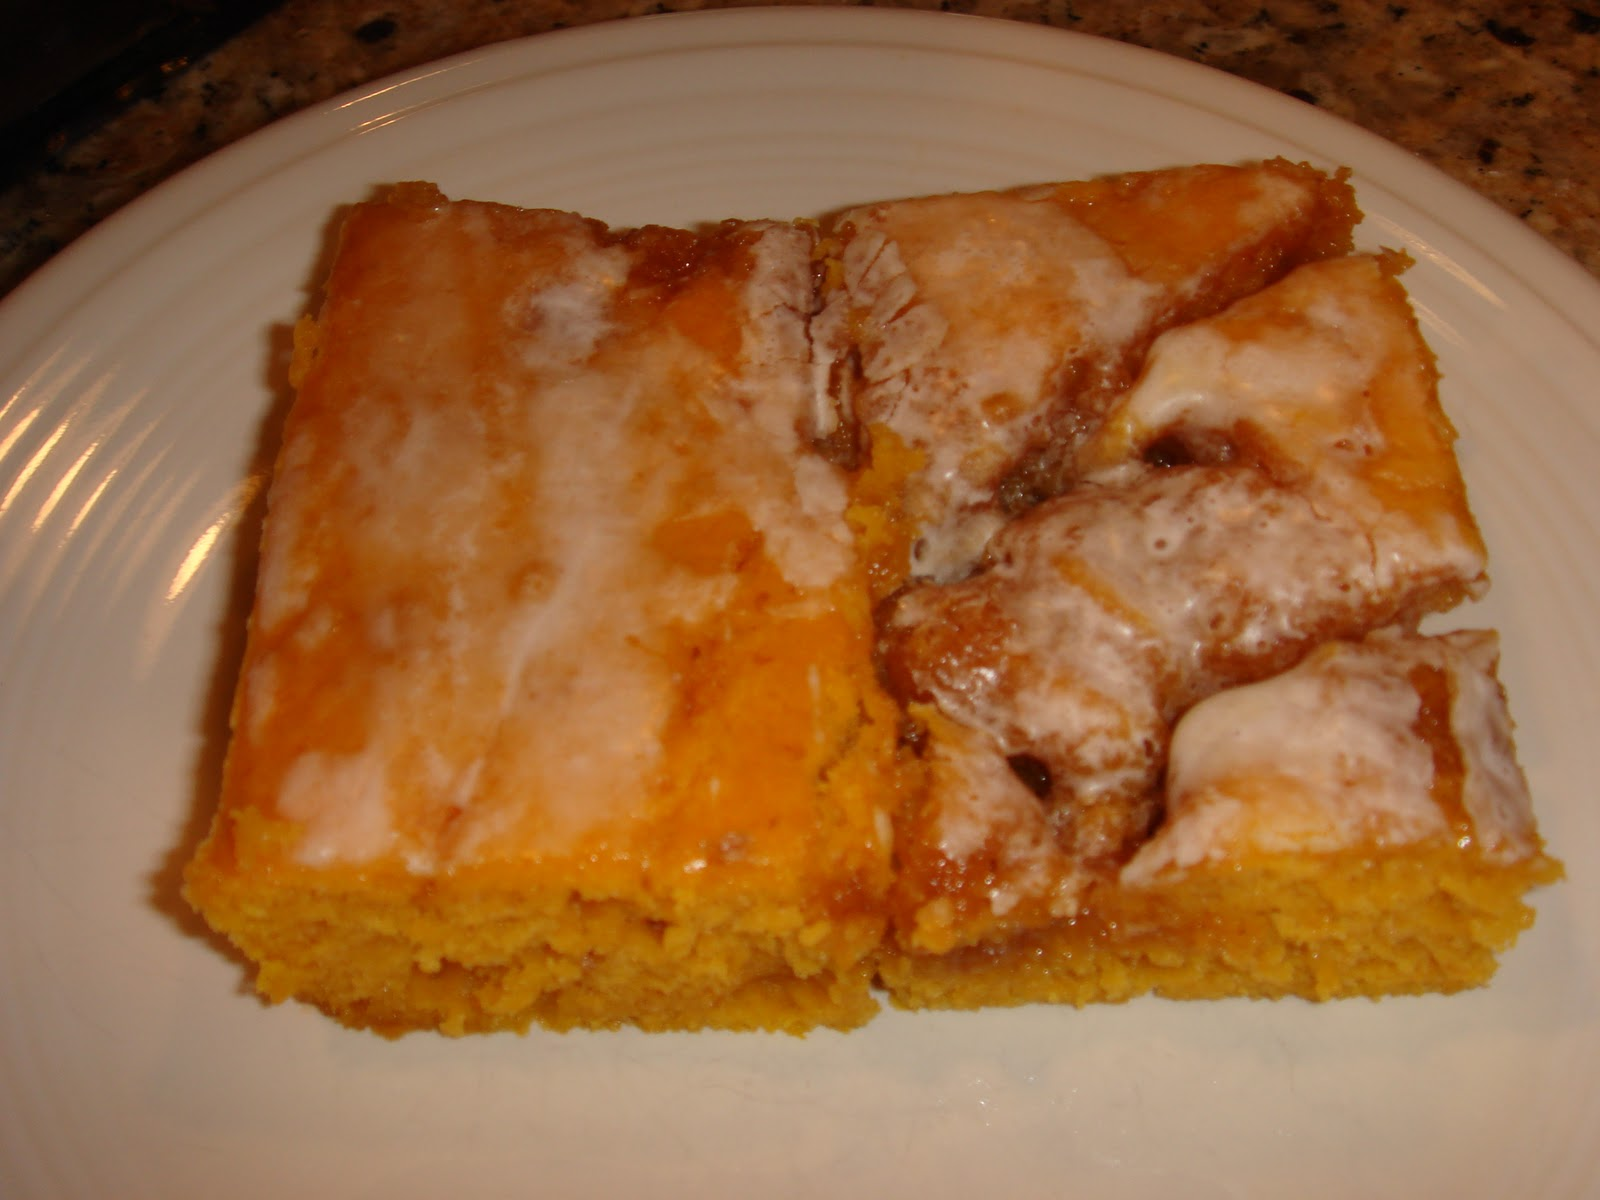 Whatcha Cookin?: Cinnamon Roll Pumpkin Vanilla Sheet Cake